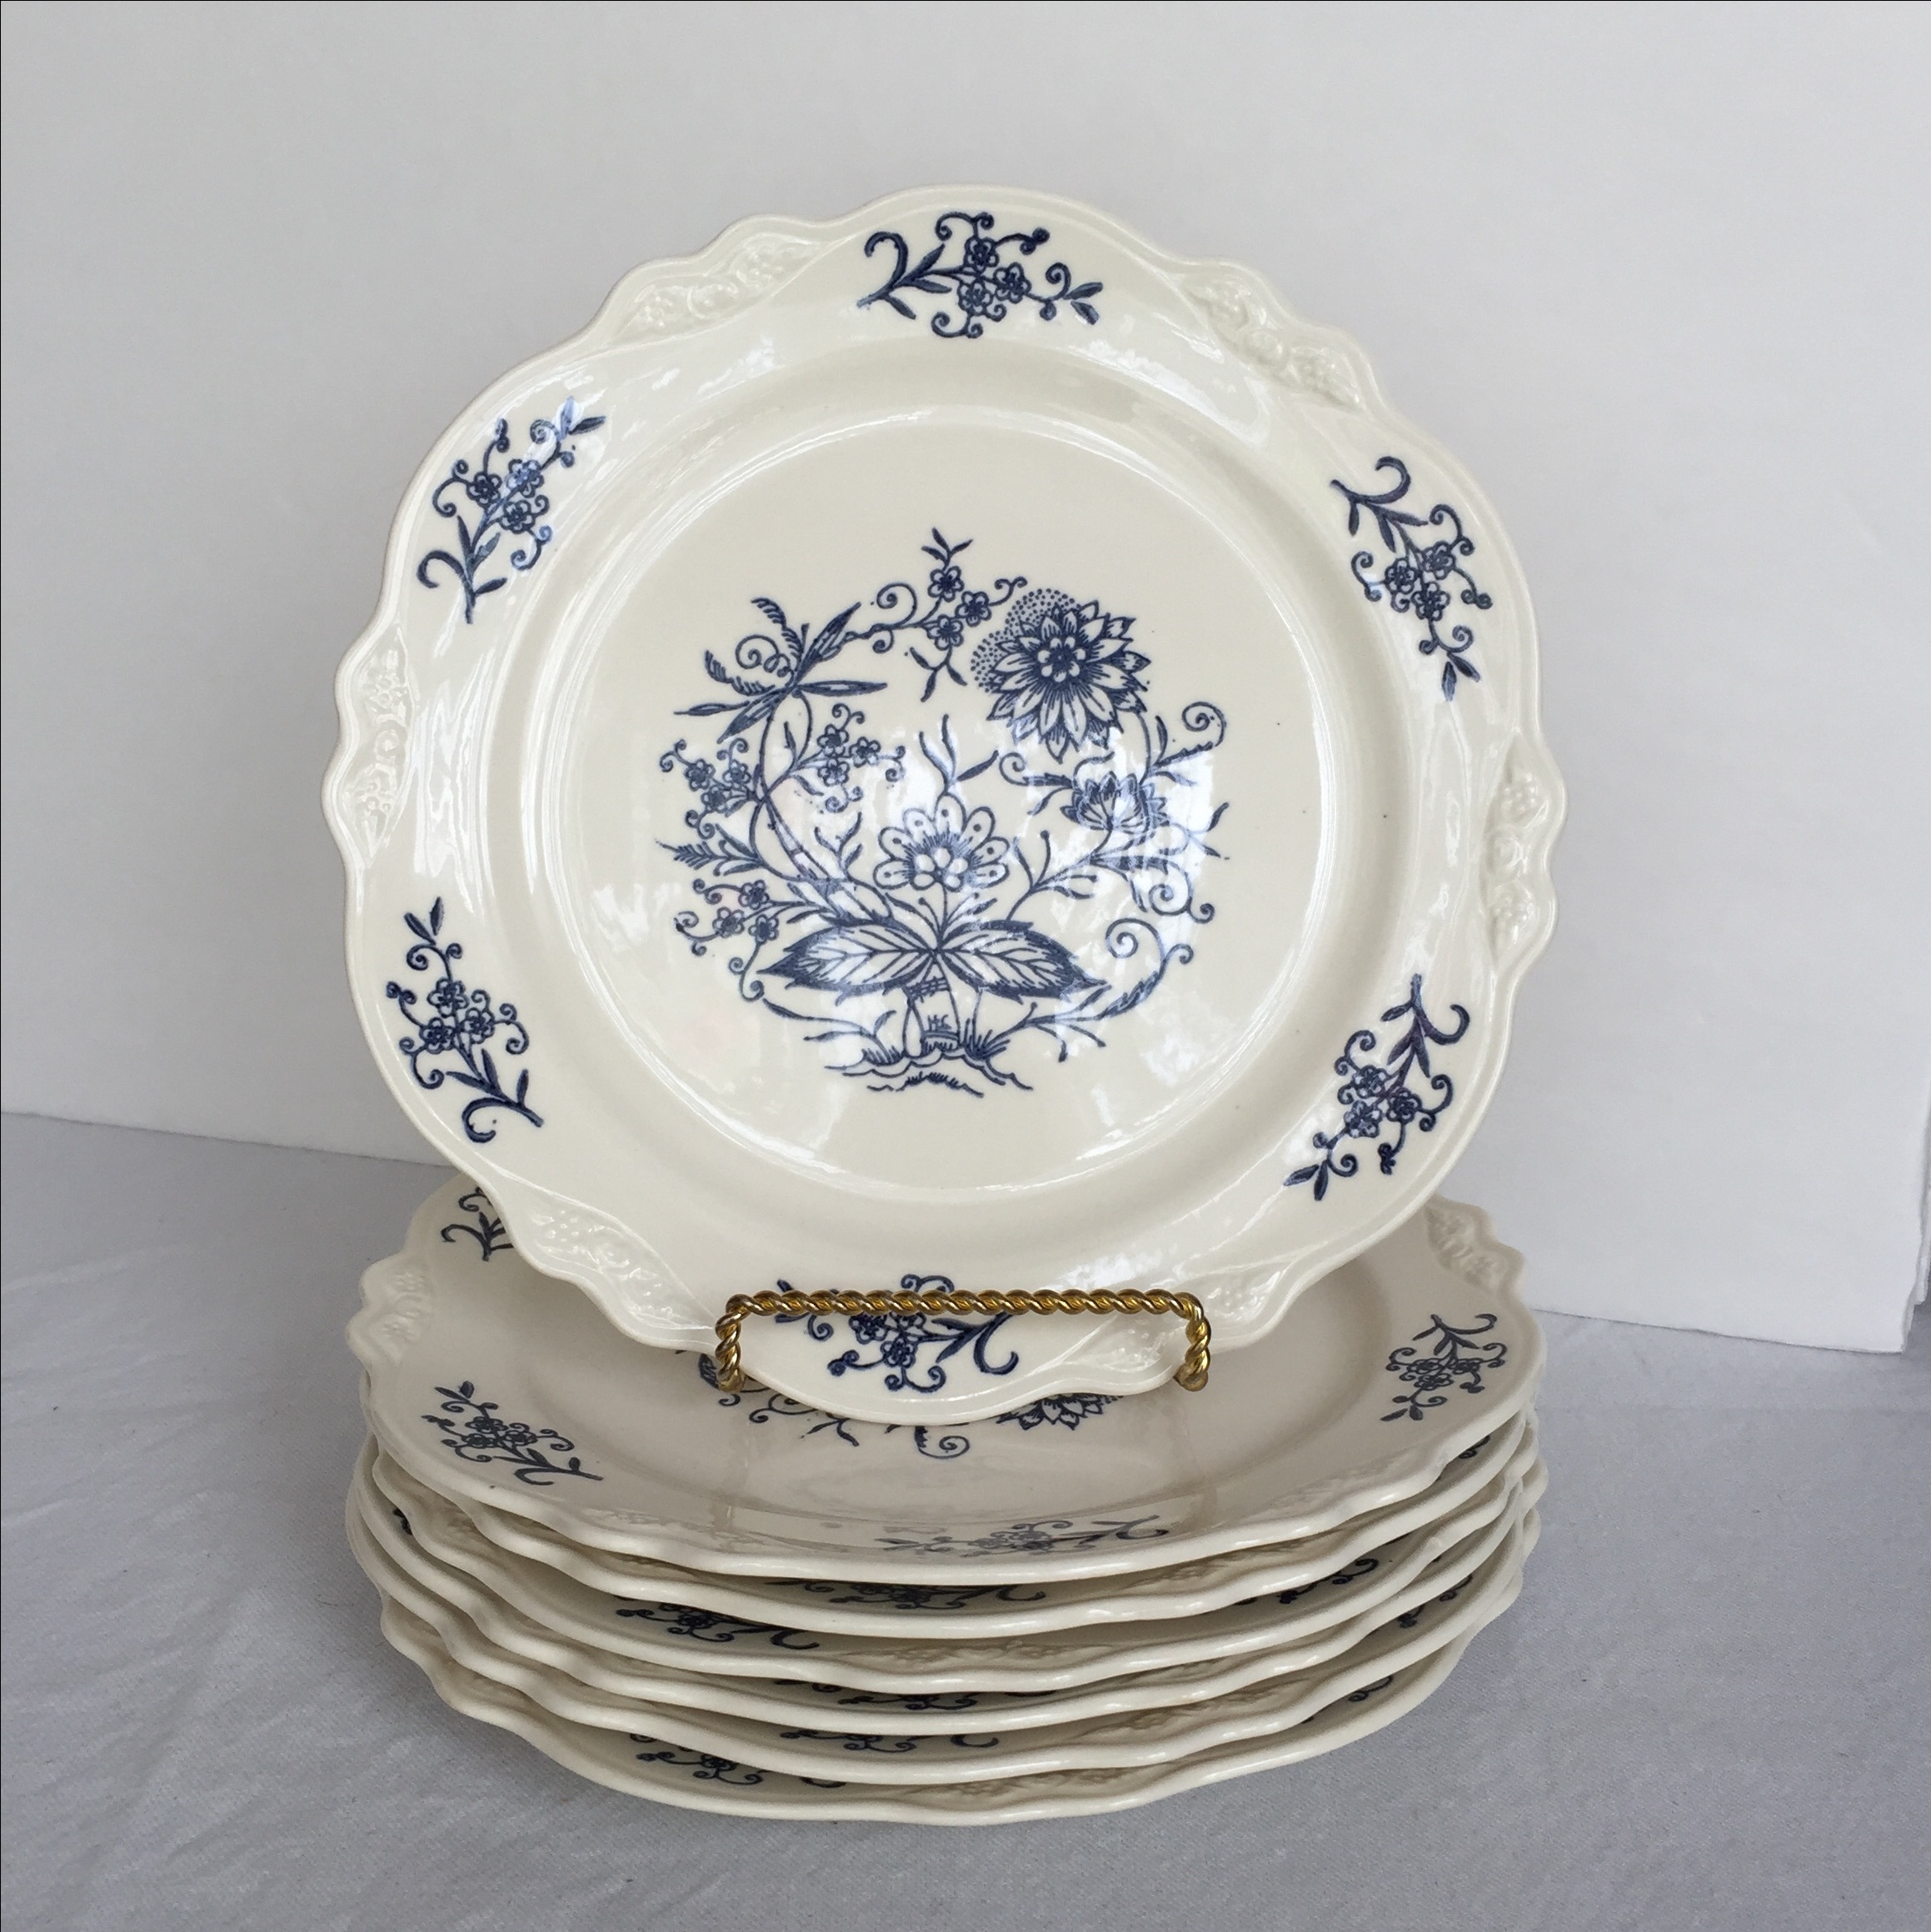 Blue Dresden Plates - Set of 7 - Image 2 of 10 & Blue Dresden Plates - Set of 7 | Chairish